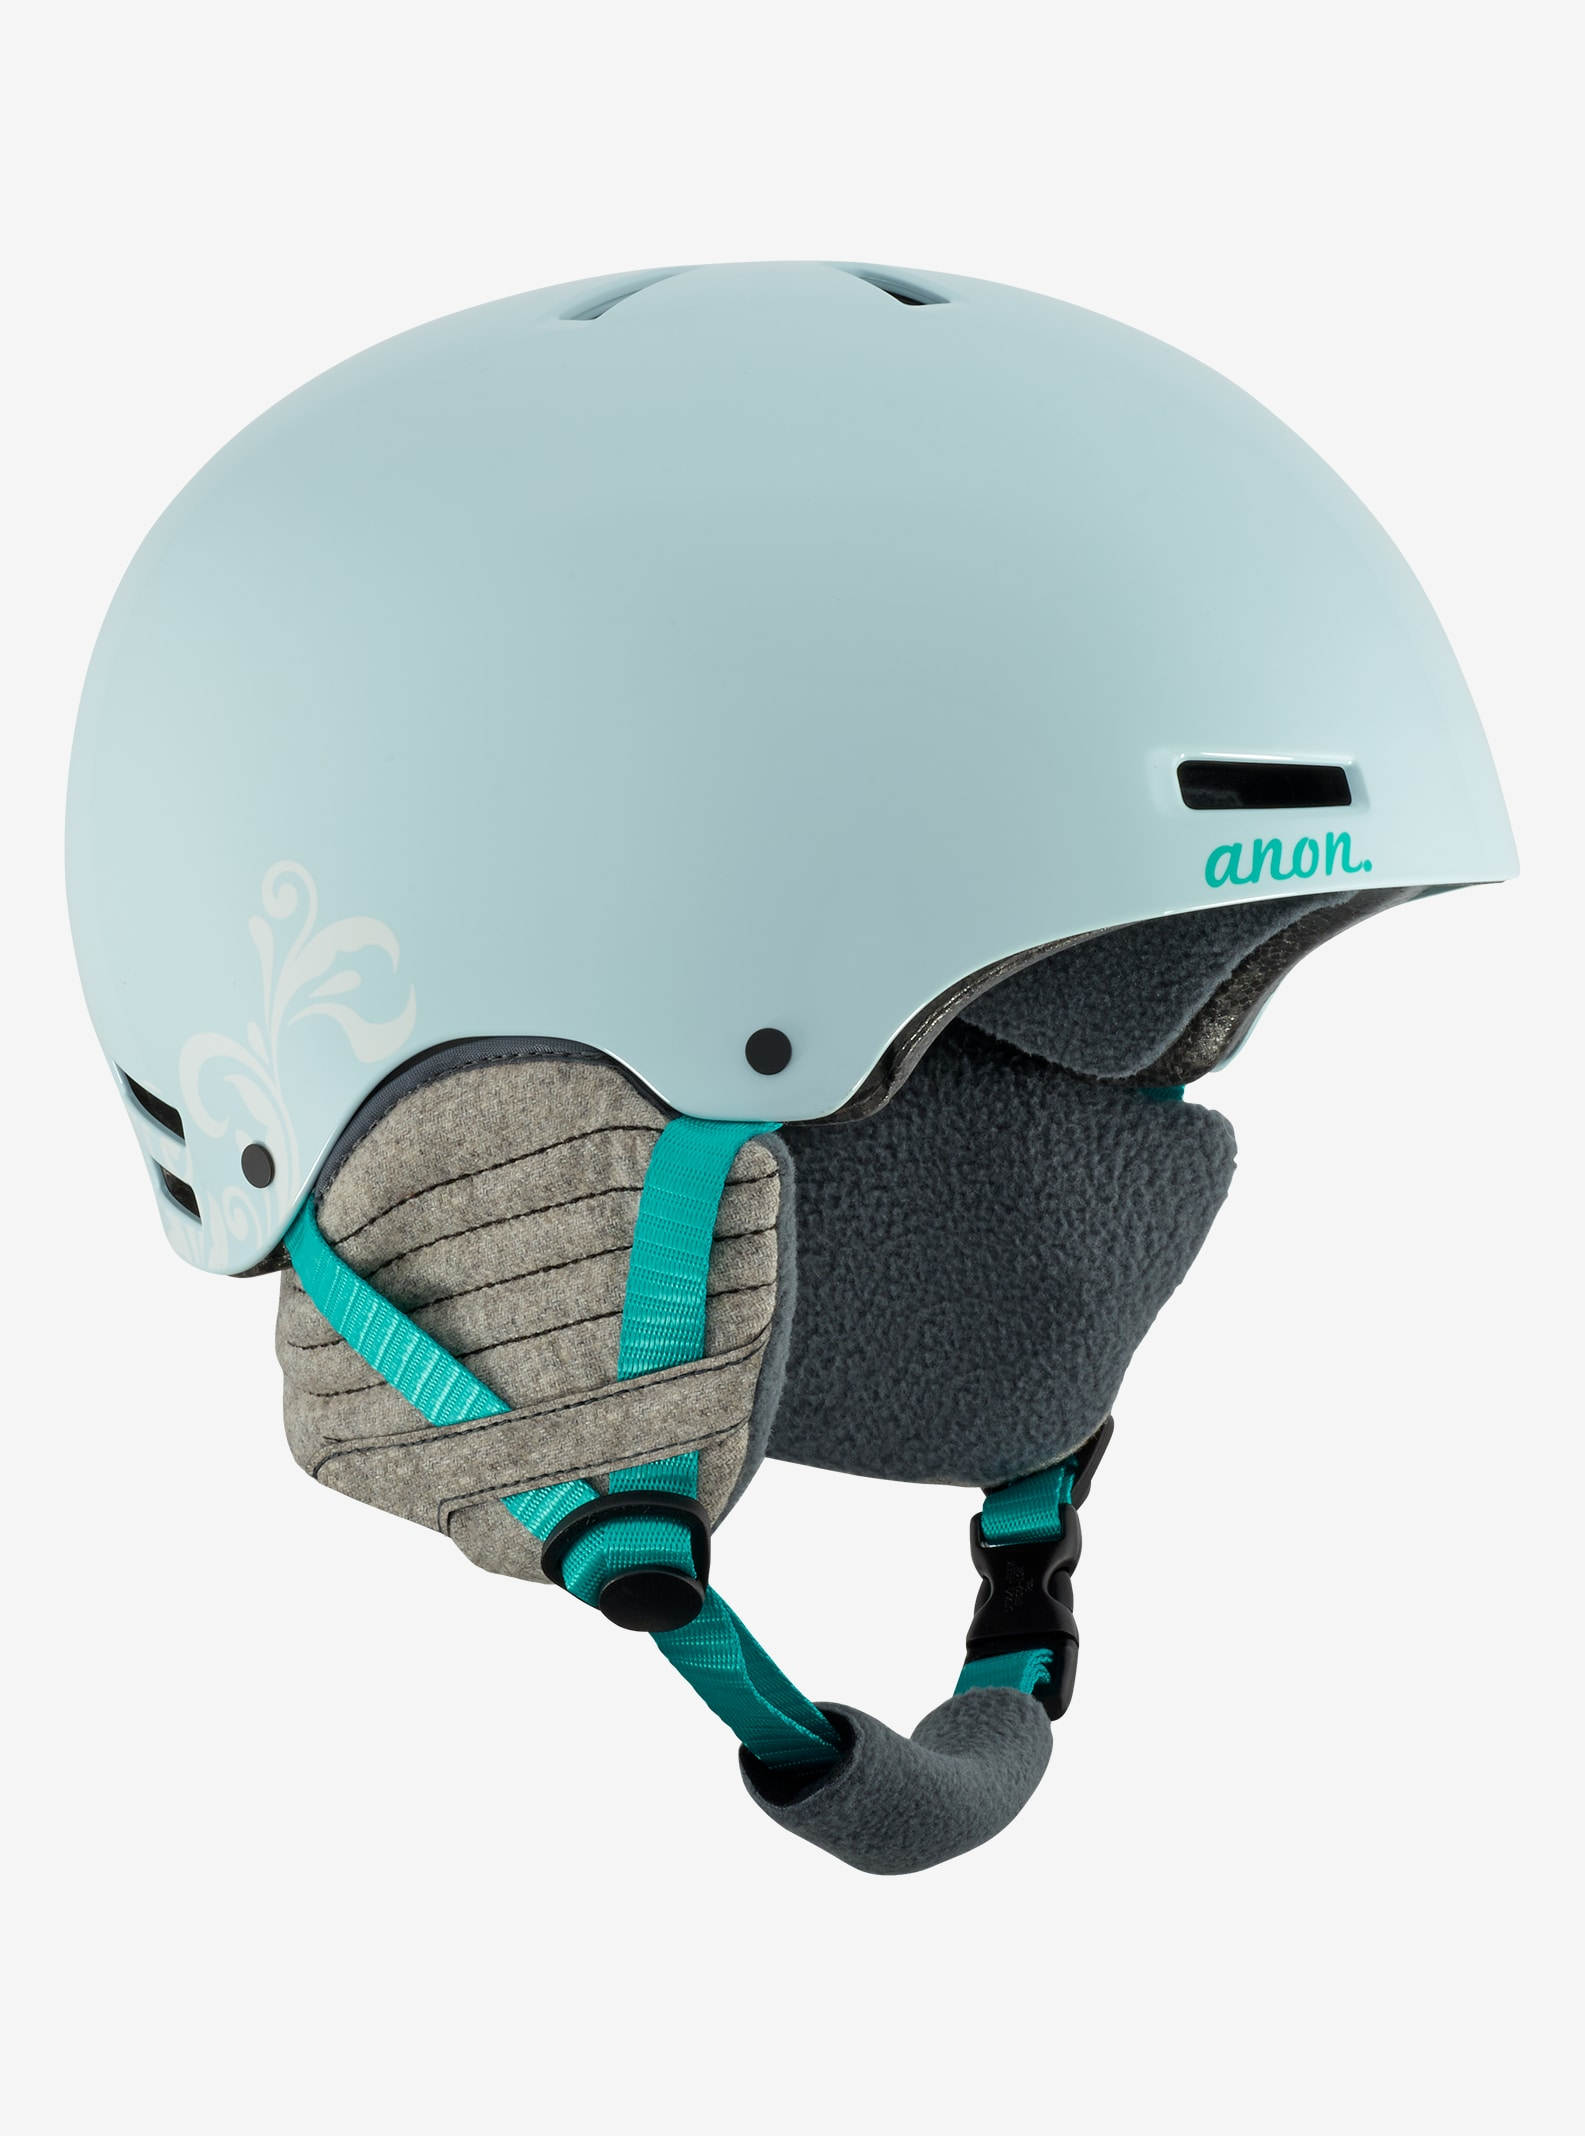 Women's Anon Greta Helmet shown in Empress Teal